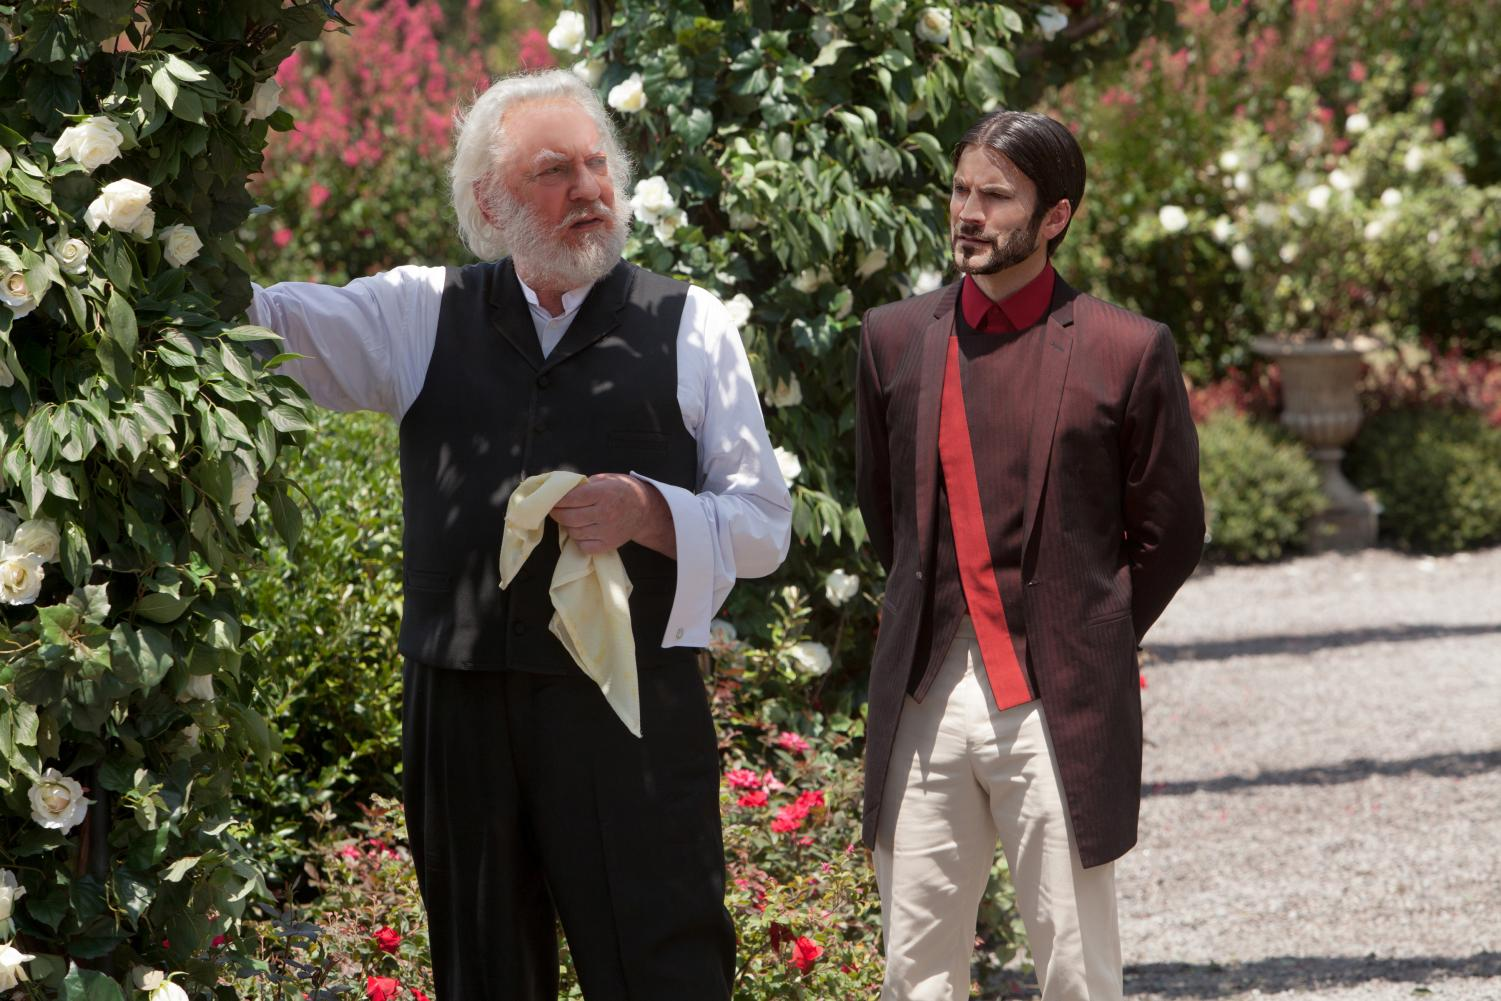 President Snow was portrayed by Donald Sutherland in 'The Hunger Games' film saga.